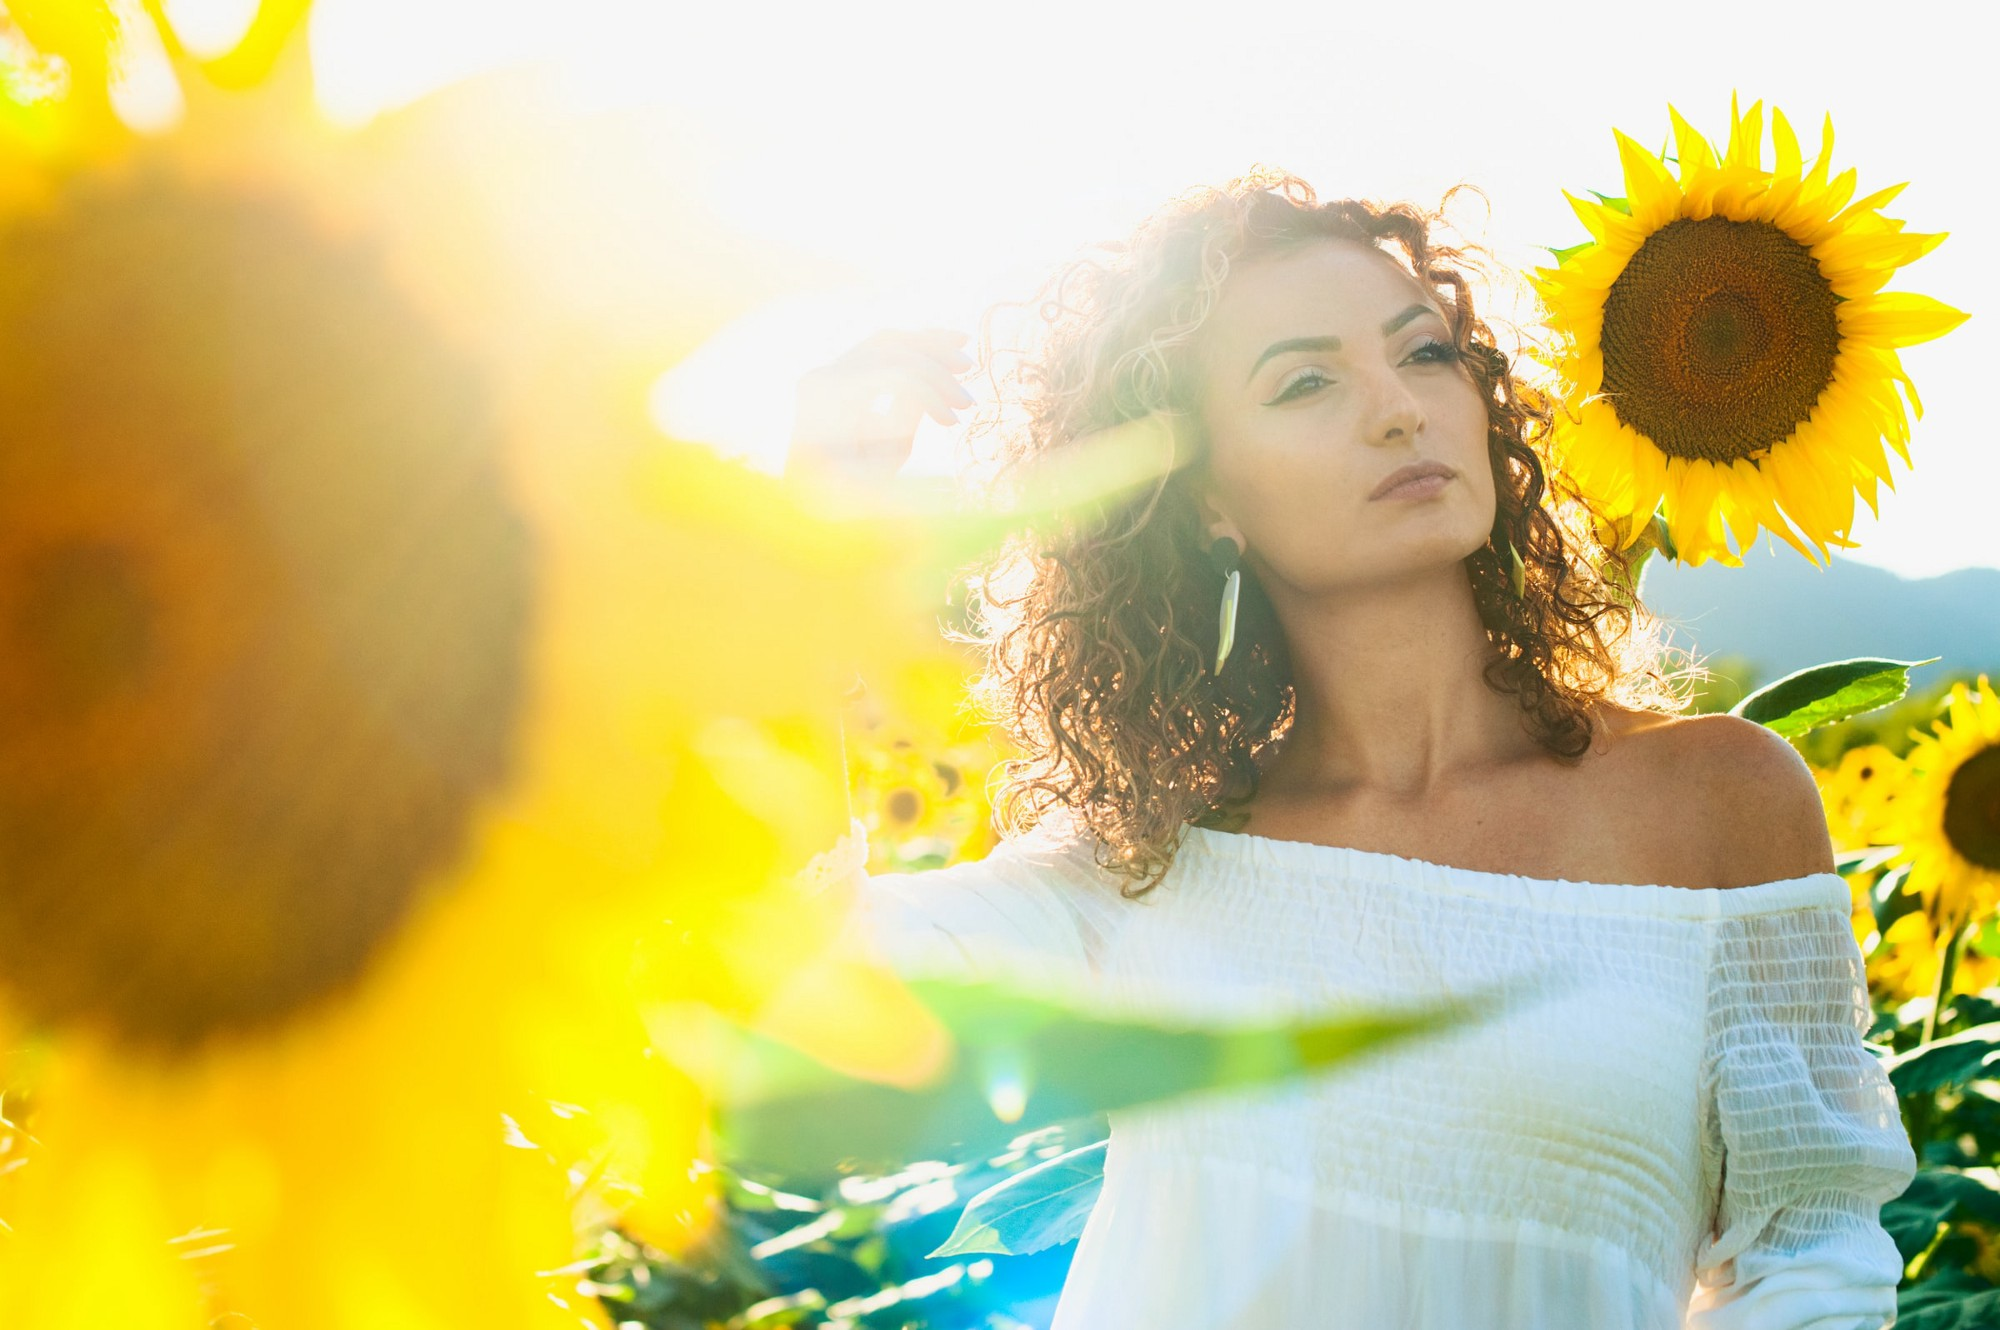 Woman in white off shoulder top among sunflowers